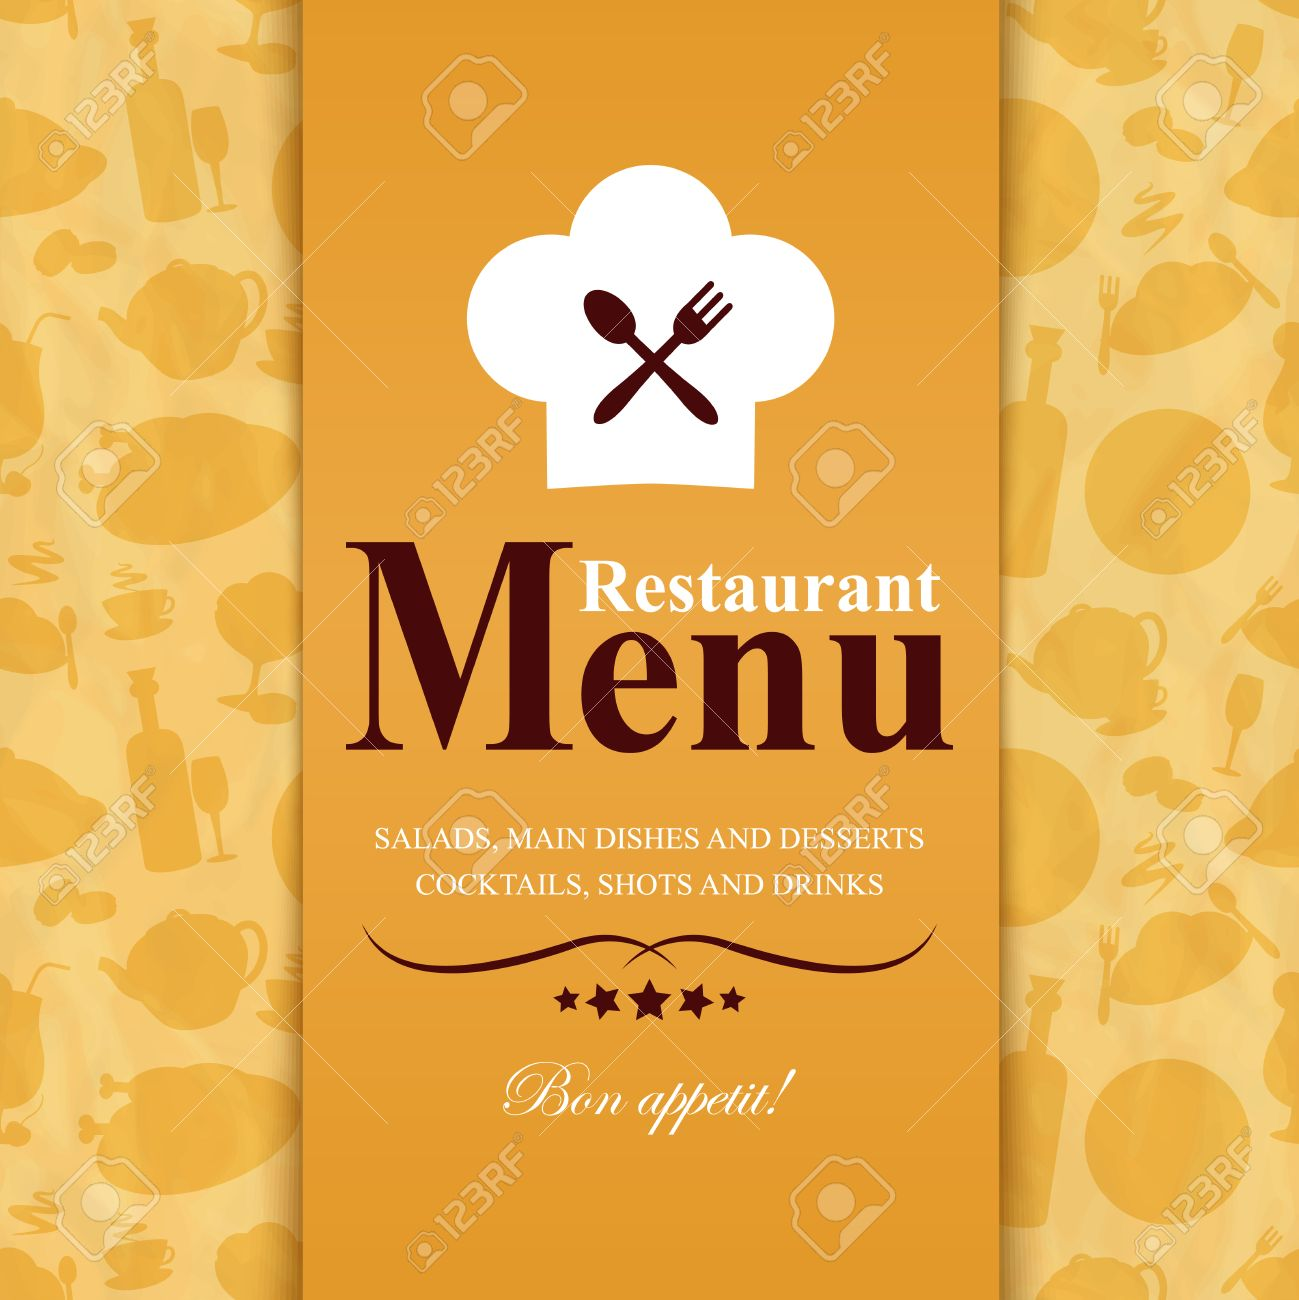 retro vintage restaurant menu template with food icons background